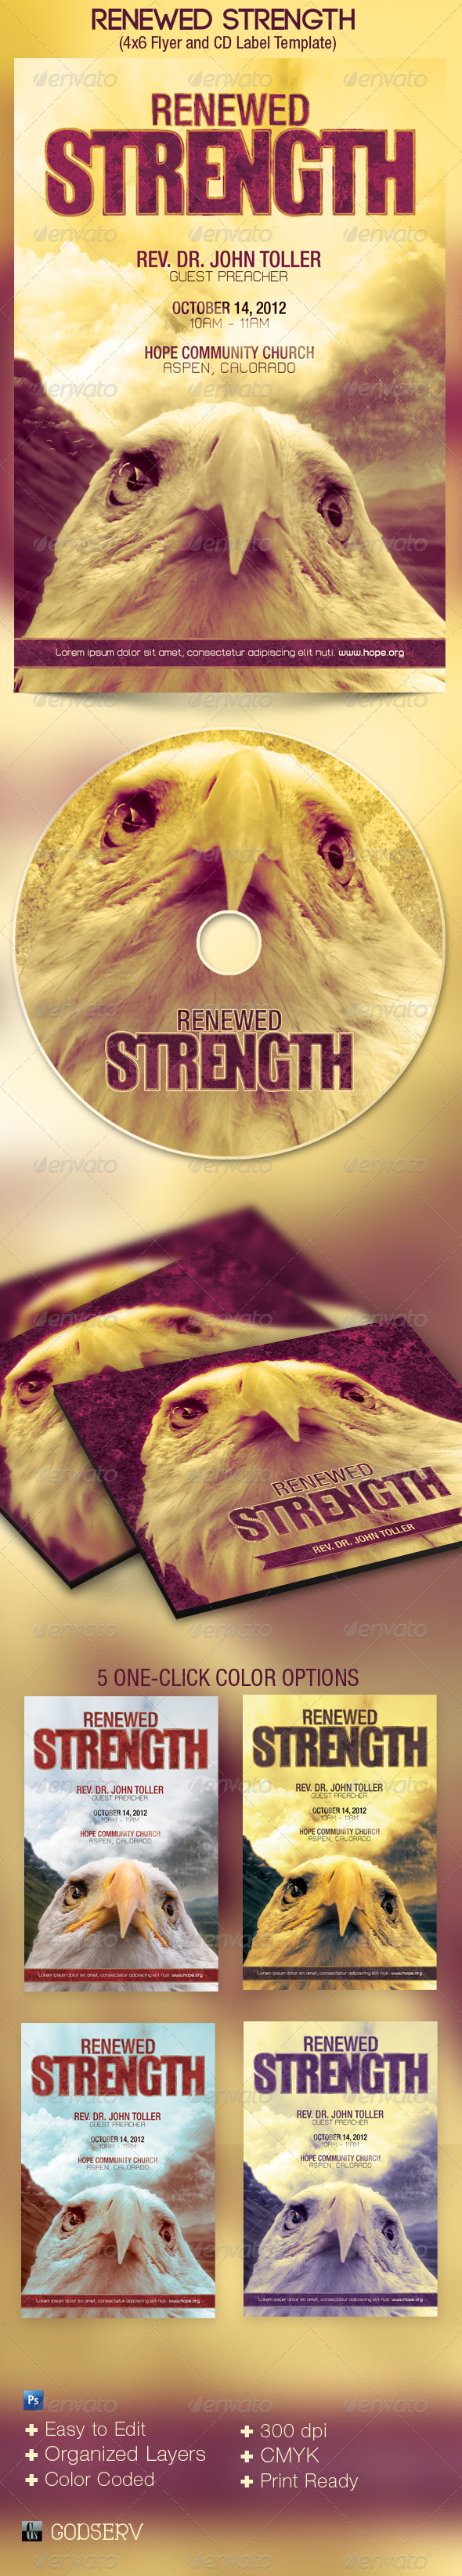 Renewed Strength Church Flyer and CD Template - Church Flyers